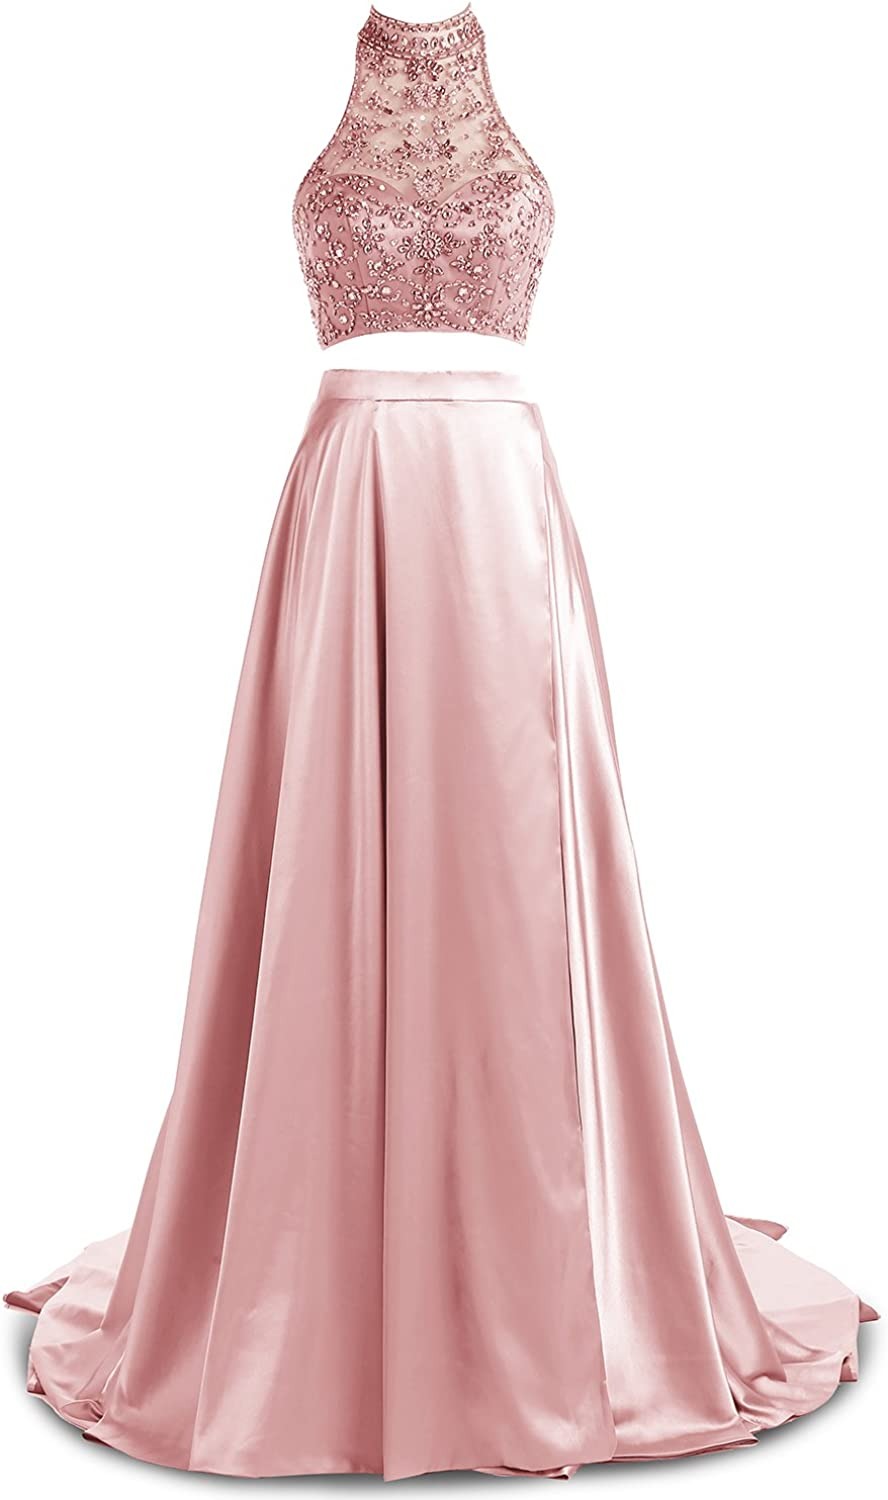 Gardenwed TwoPiece Beaded High Neck Long Evening Prom Dresses 2017